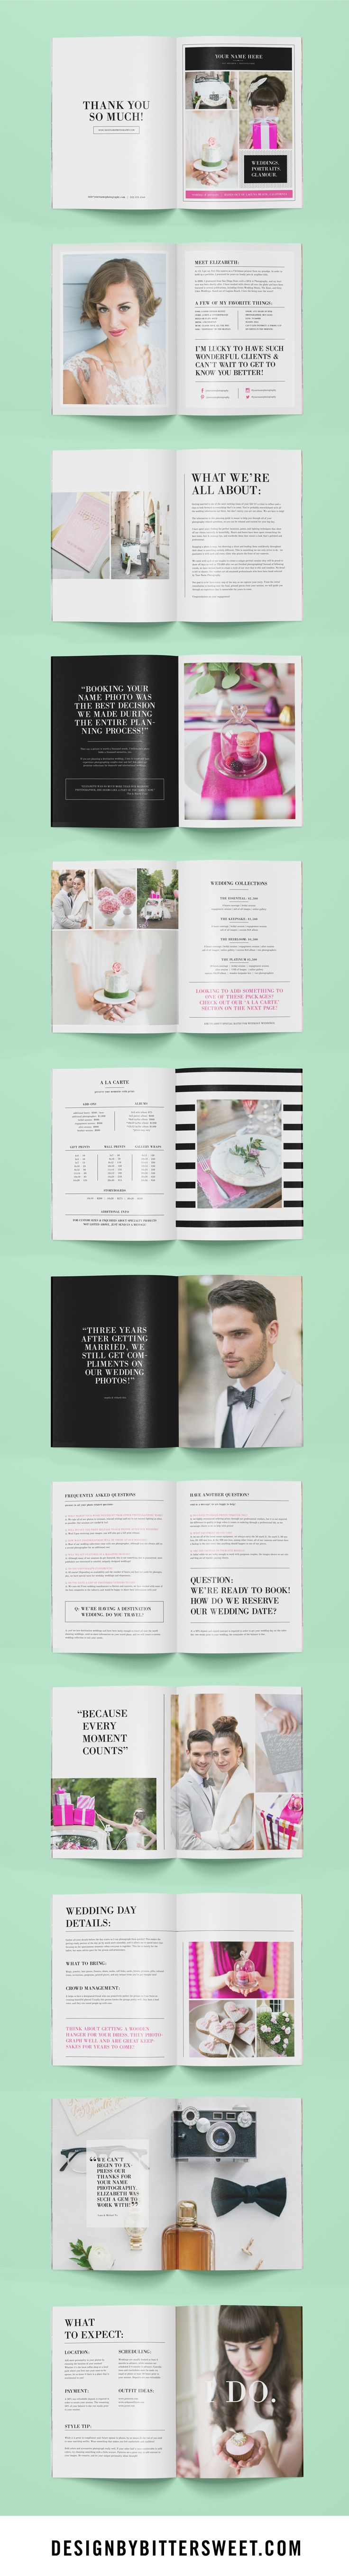 Photography magazine template for wedding photographers, wedding planners, & Photoshop users. Get this 24-page photographer welcome packet with beautiful images by @annelimphoto . This customizable Photoshop template gives your brides & grooms wedding day tips as well helpful information for their engagement & bridal sessions.